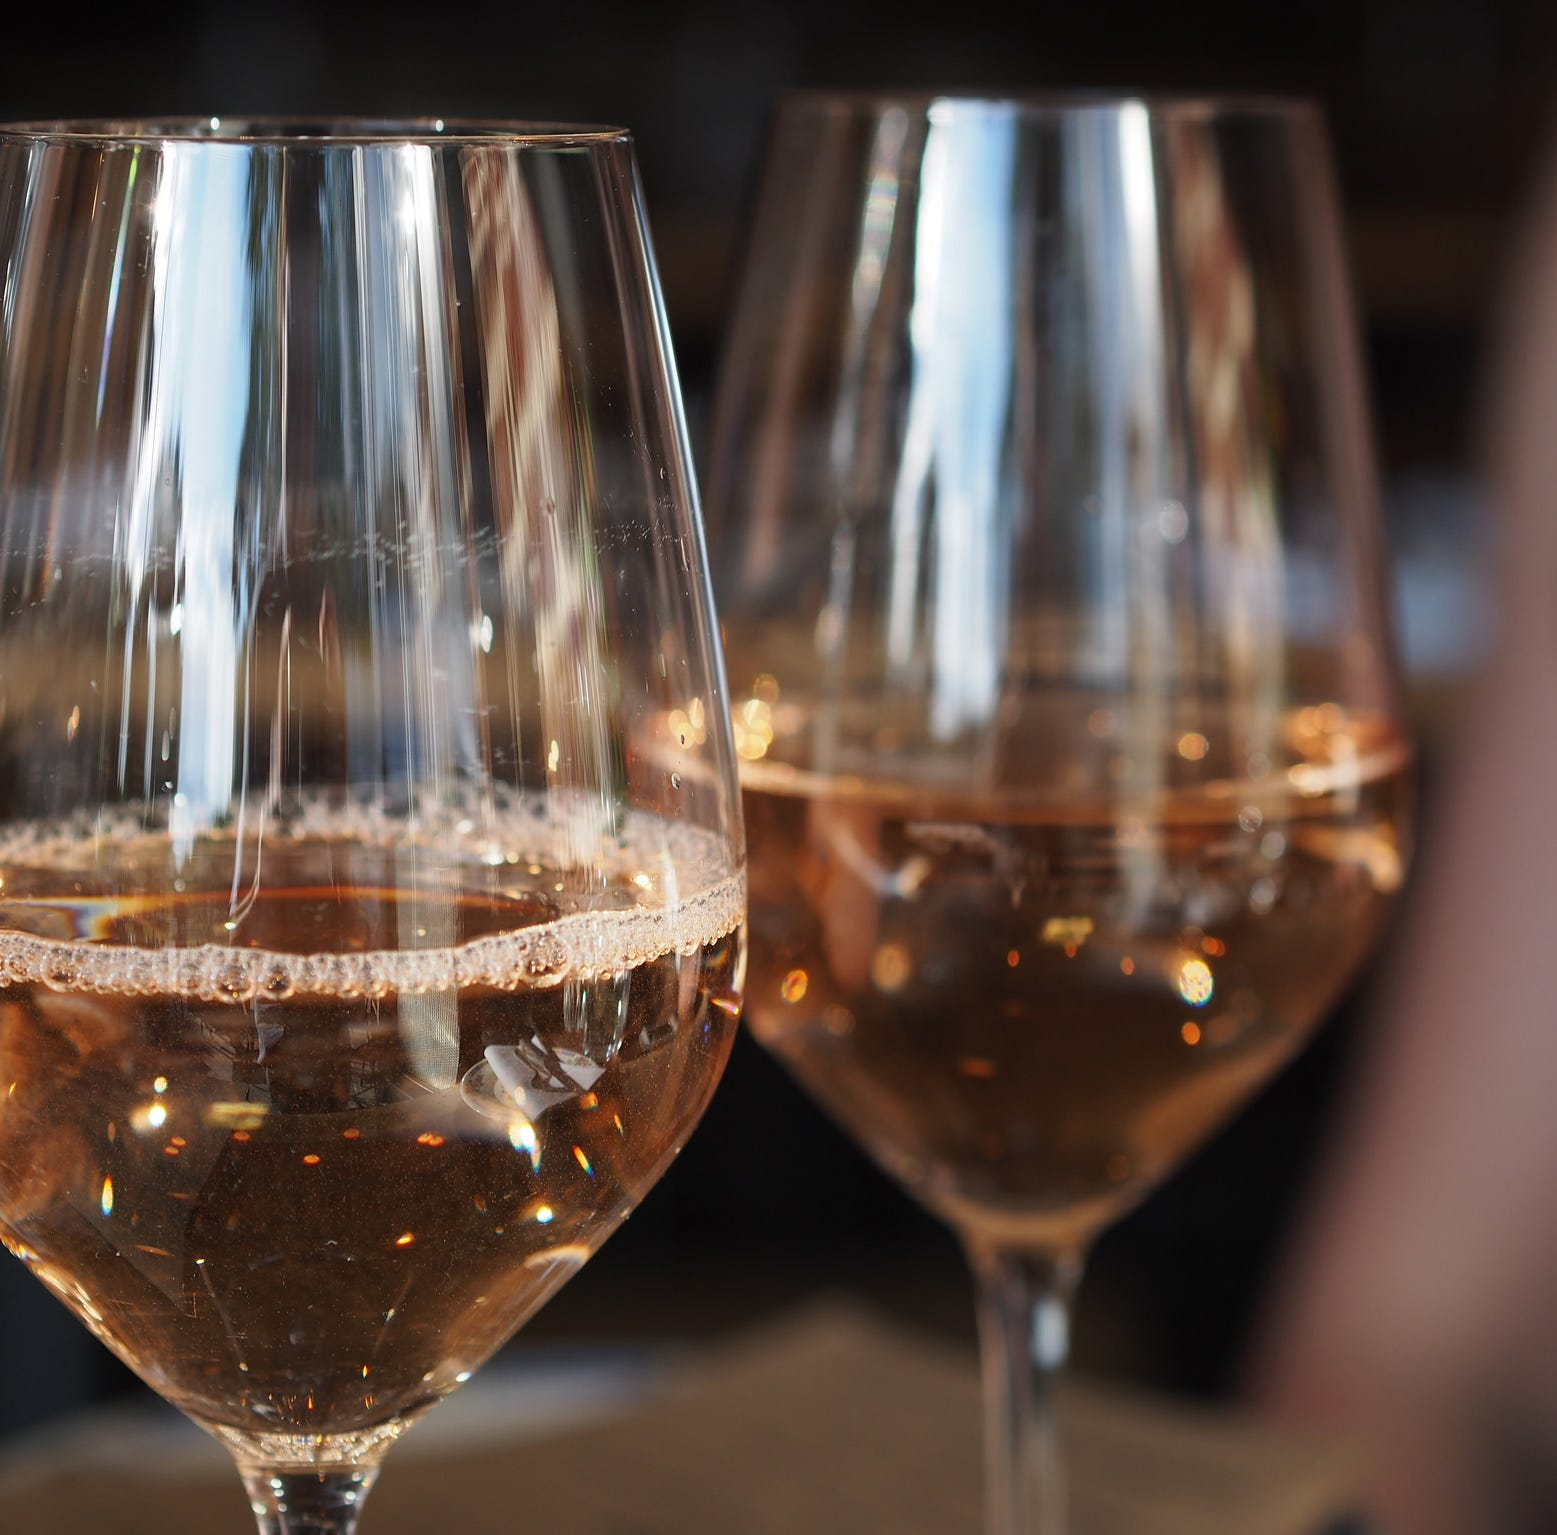 Ray's in Wauwatosa plans a Rosé Day Festival and a chance to savor very old sherries